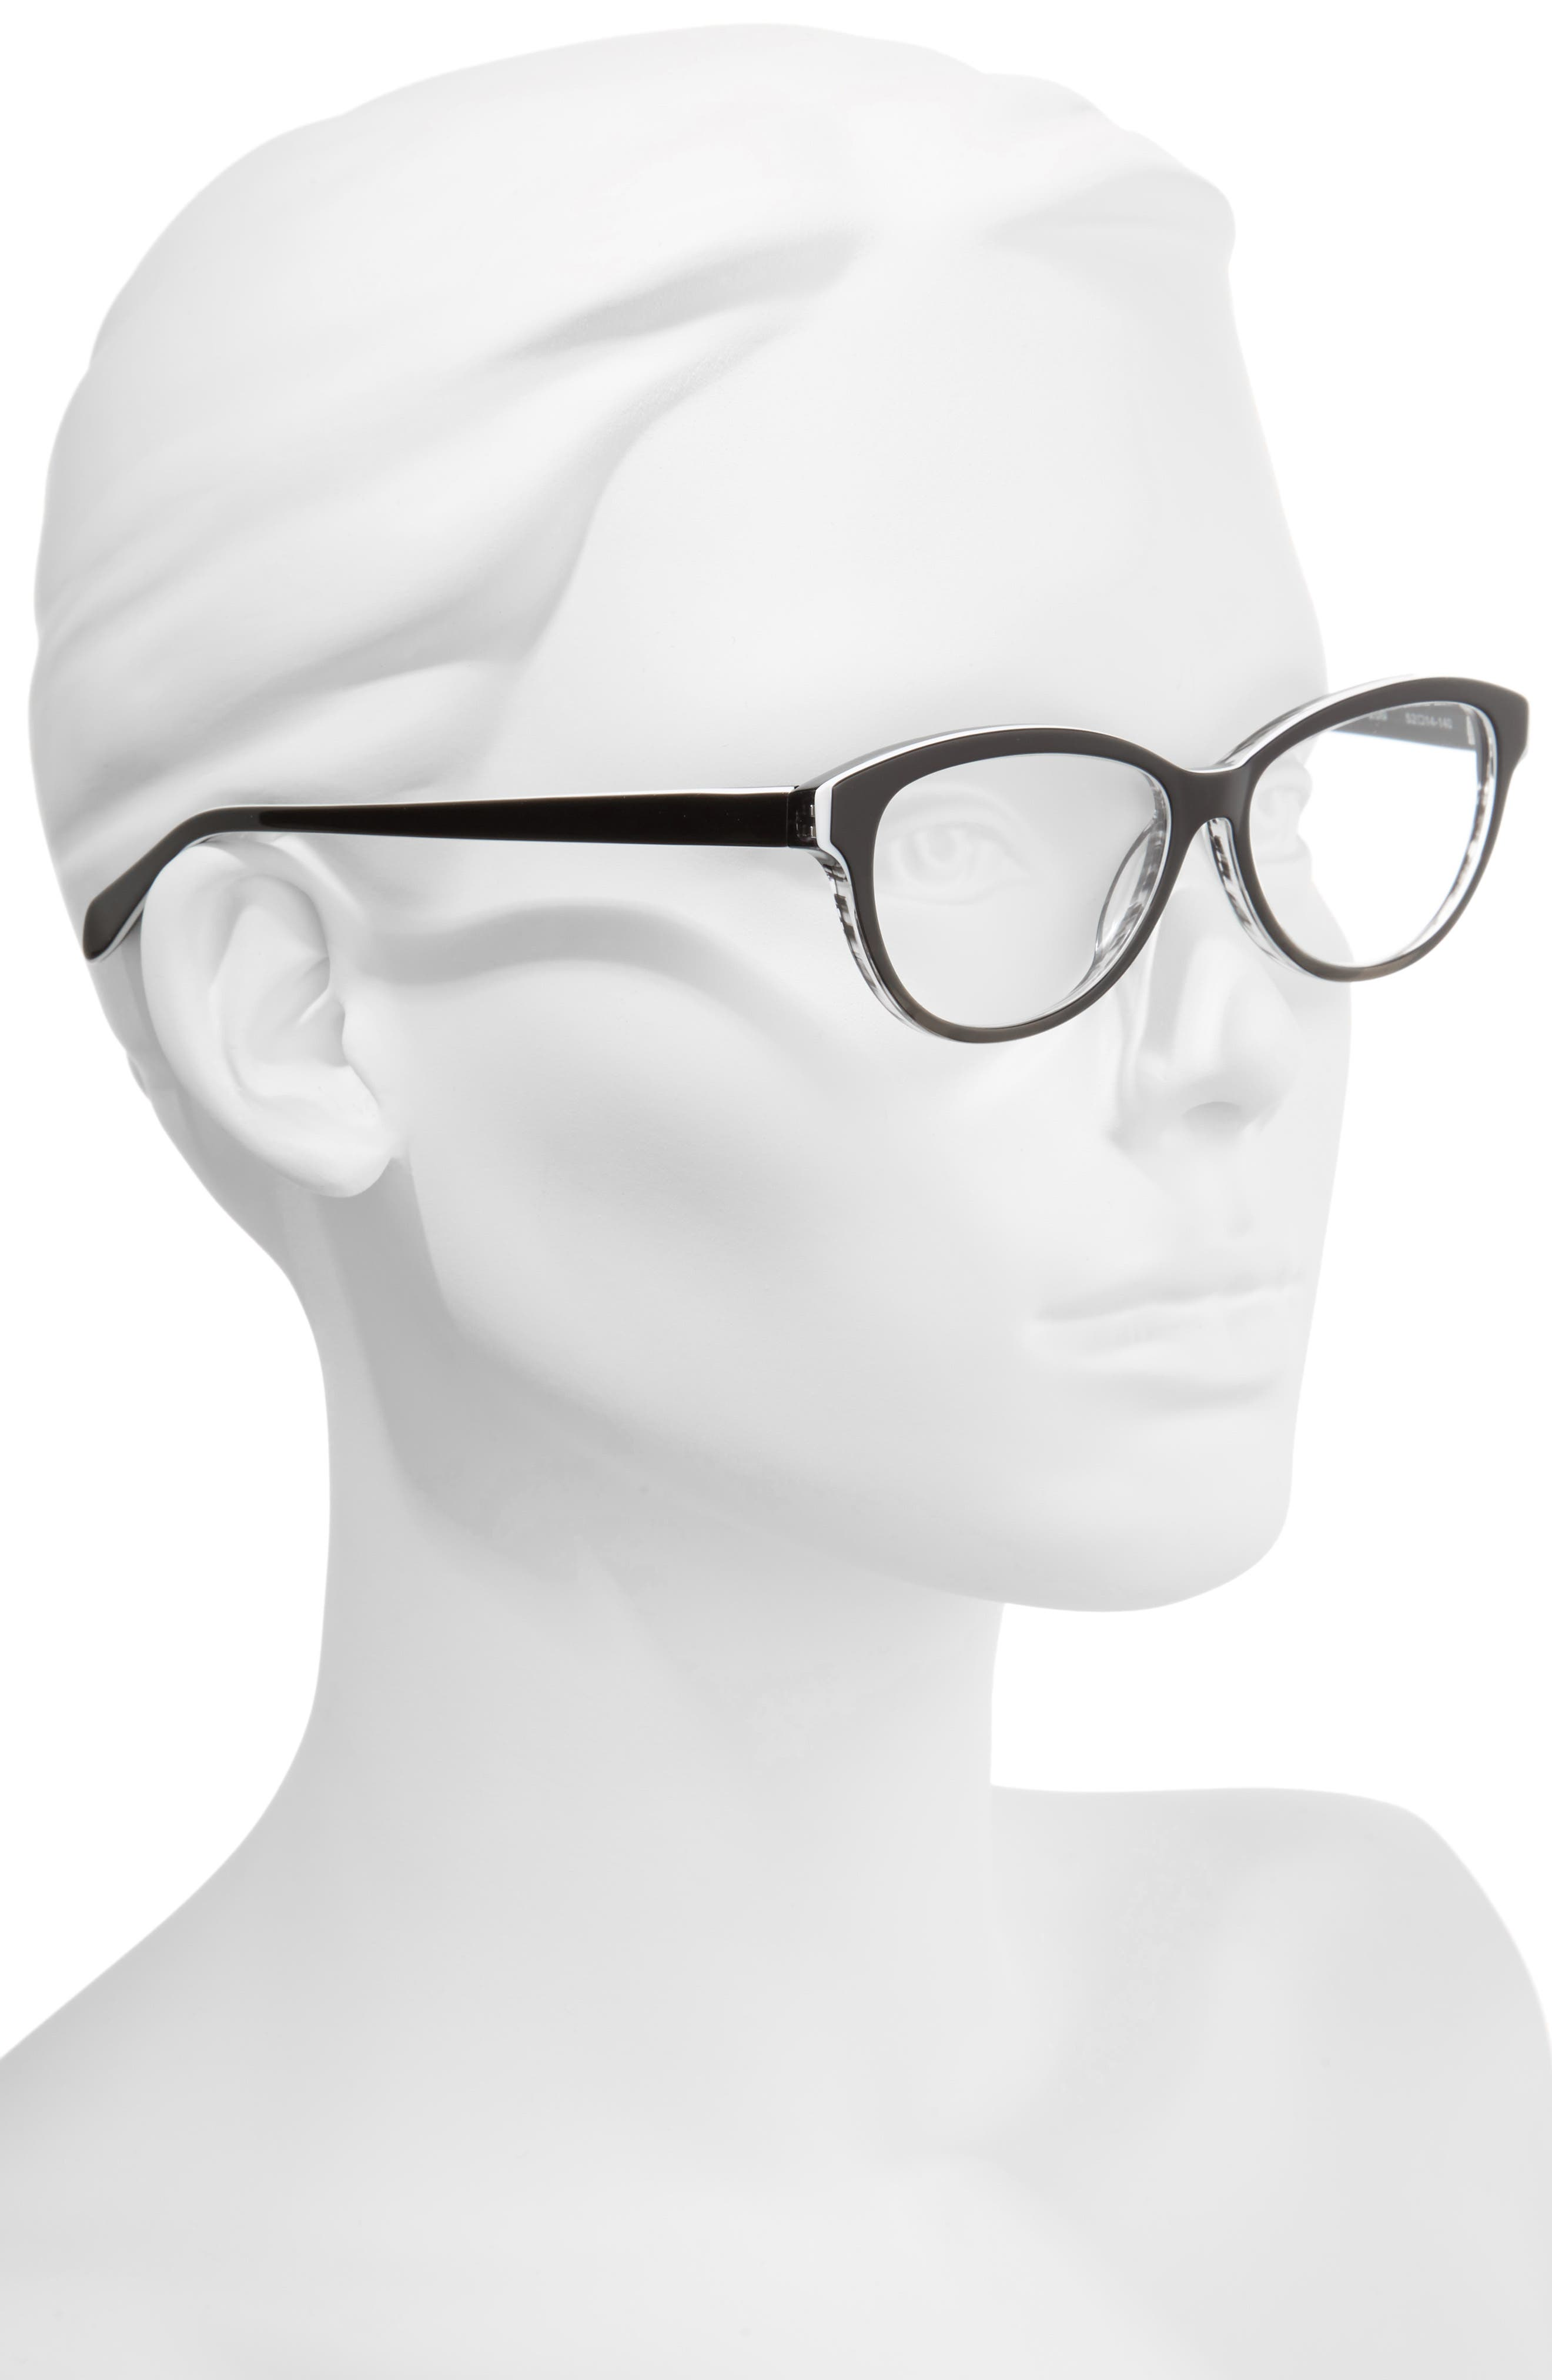 Marge 50mm Reading Glasses,                             Alternate thumbnail 3, color,